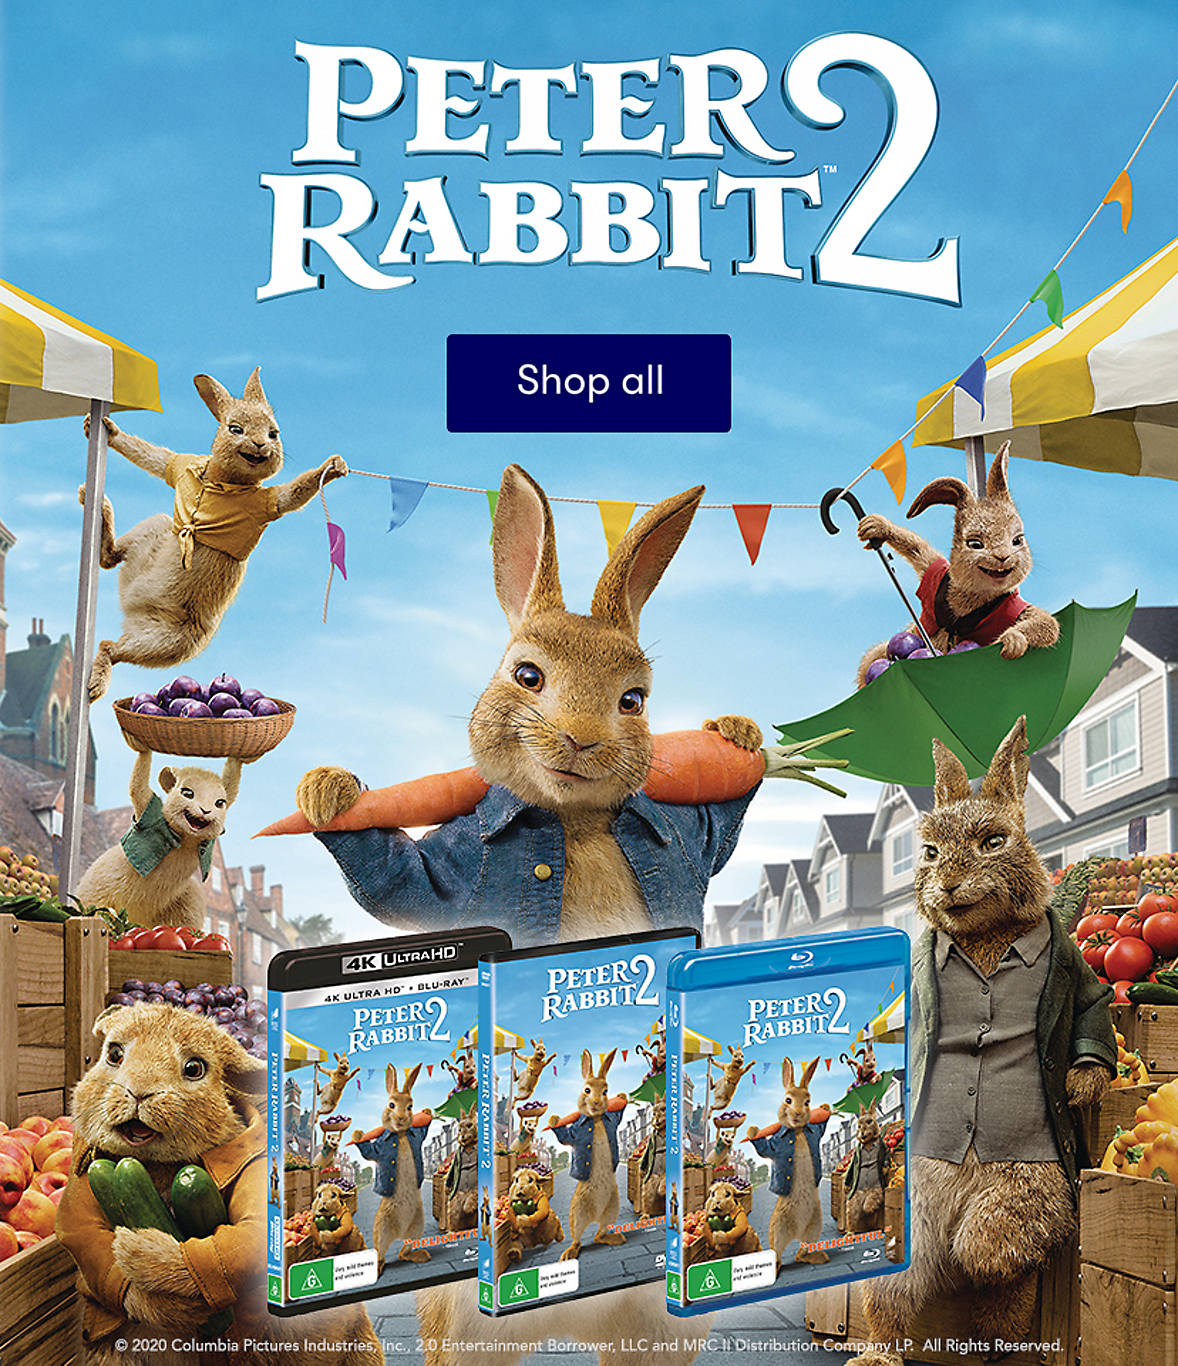 Peter Rabbit 2 now available on DVD & Bluray